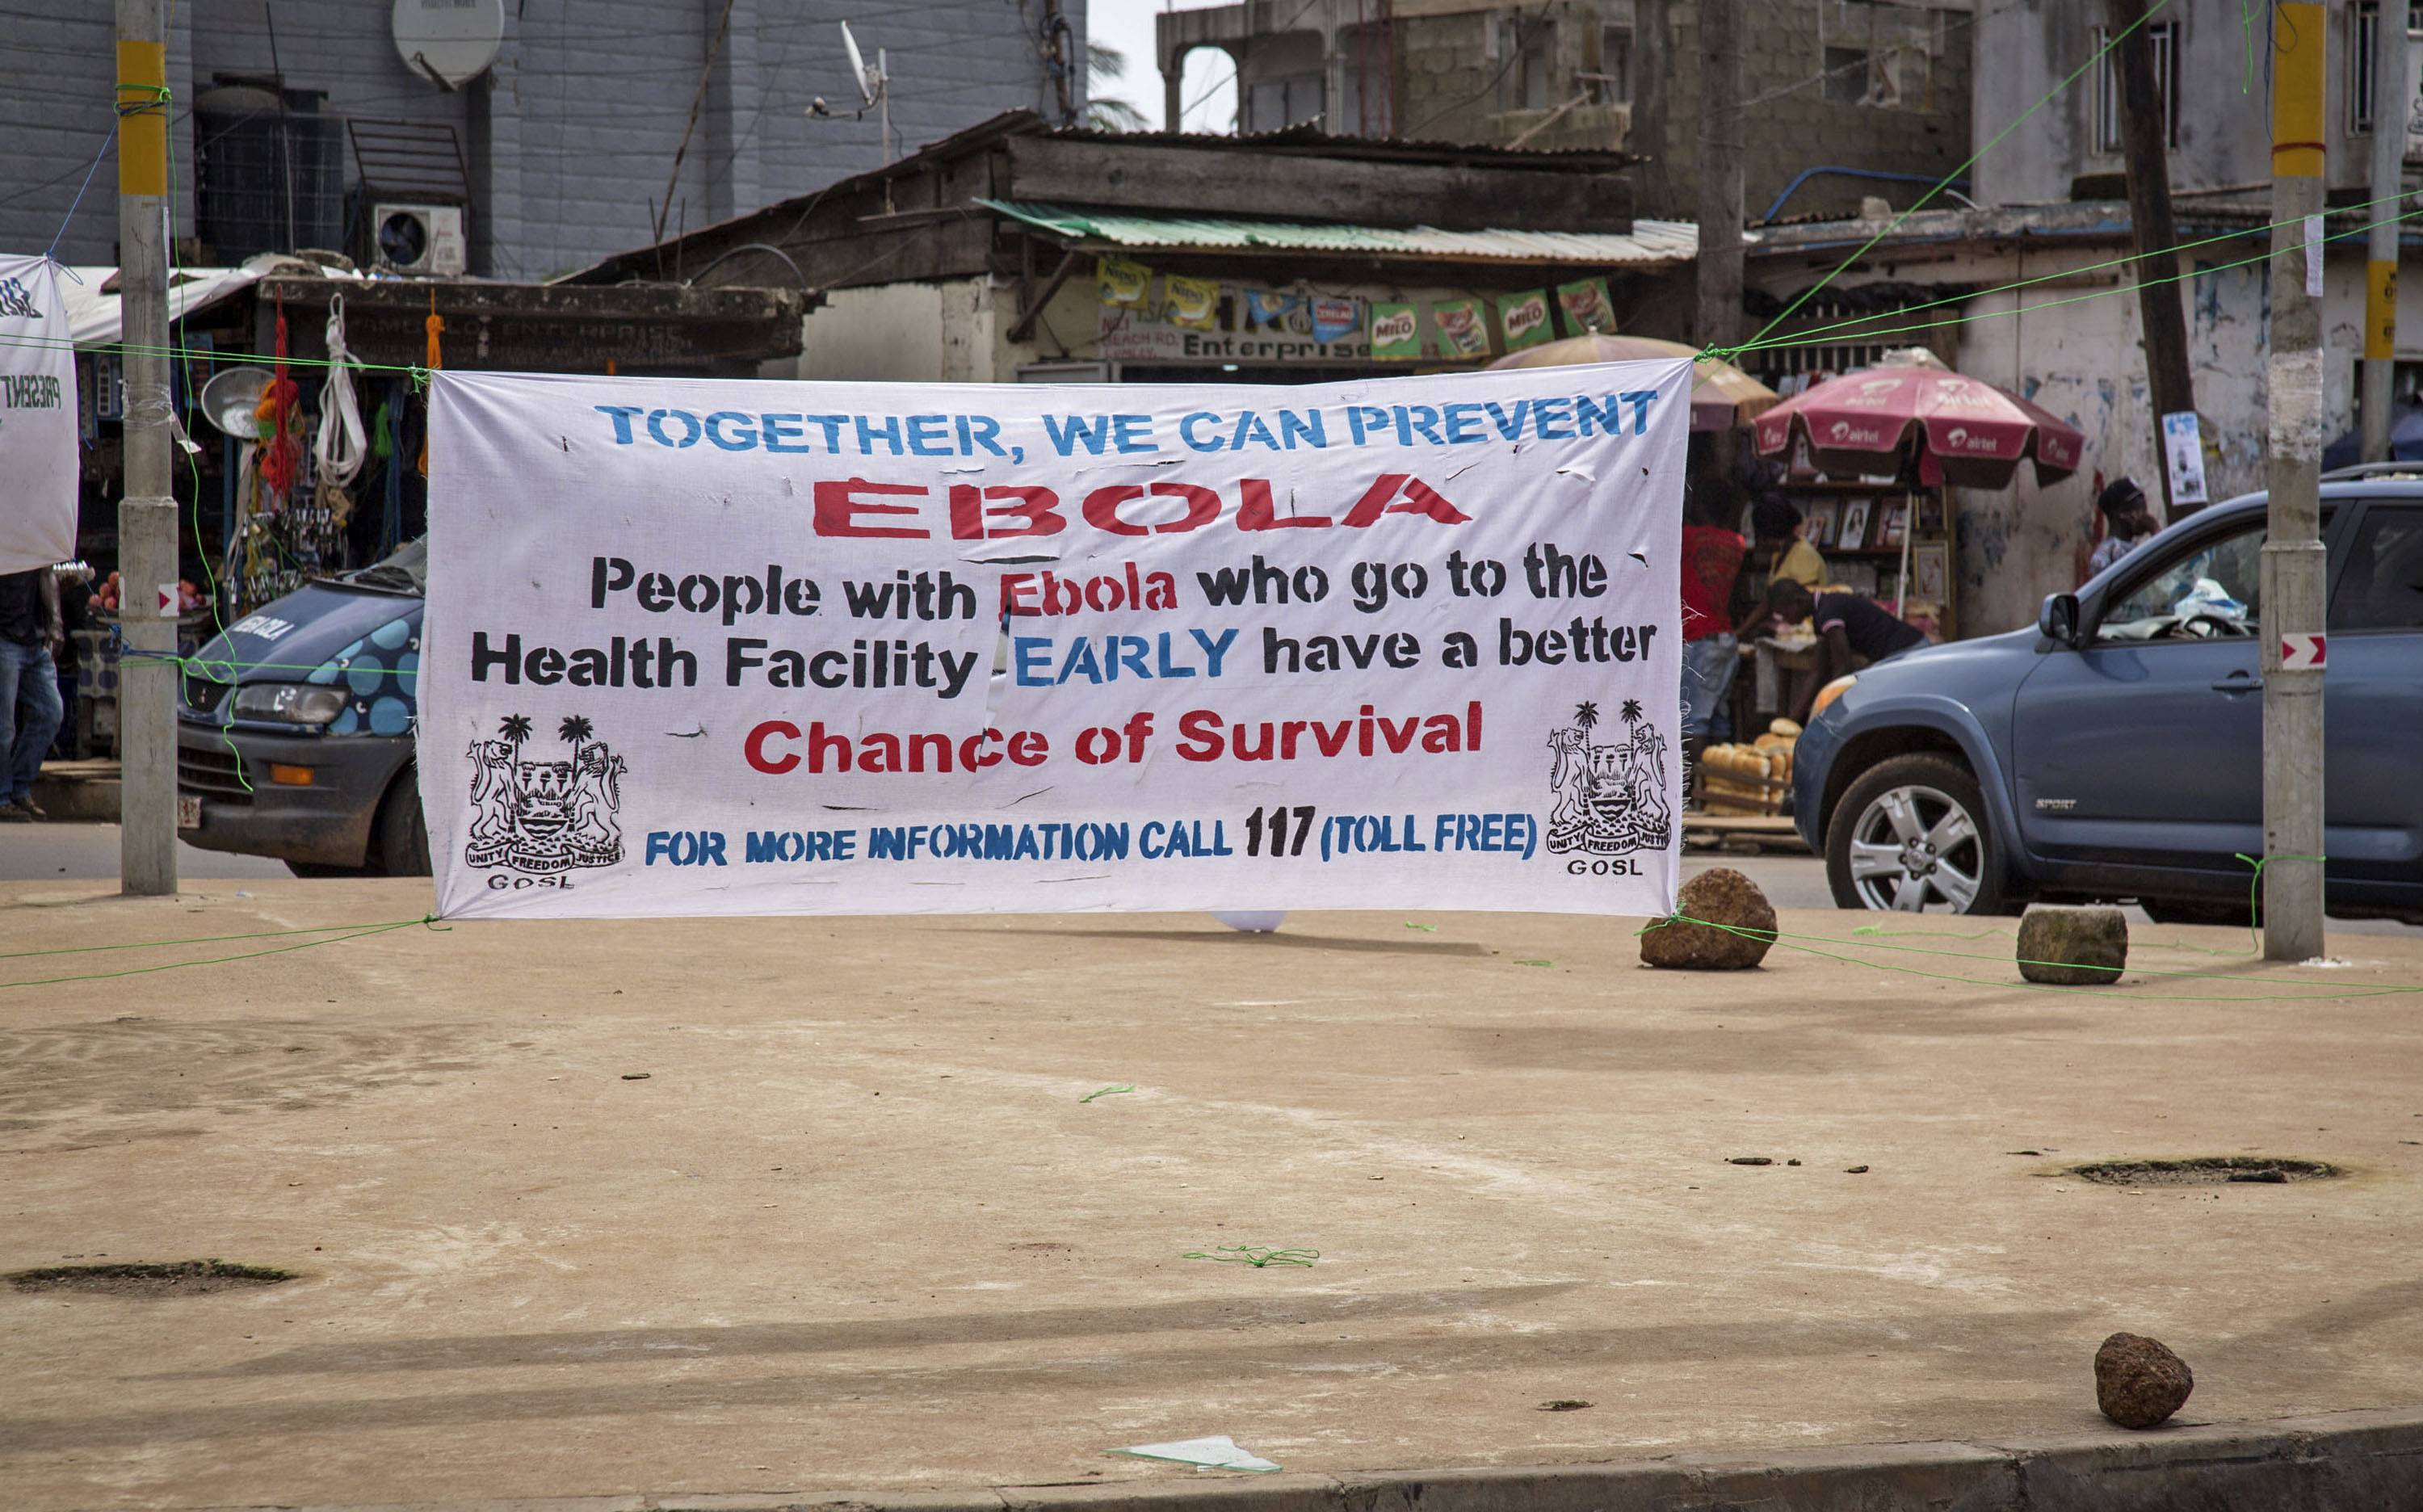 Ebola outbreak is a public health emergency